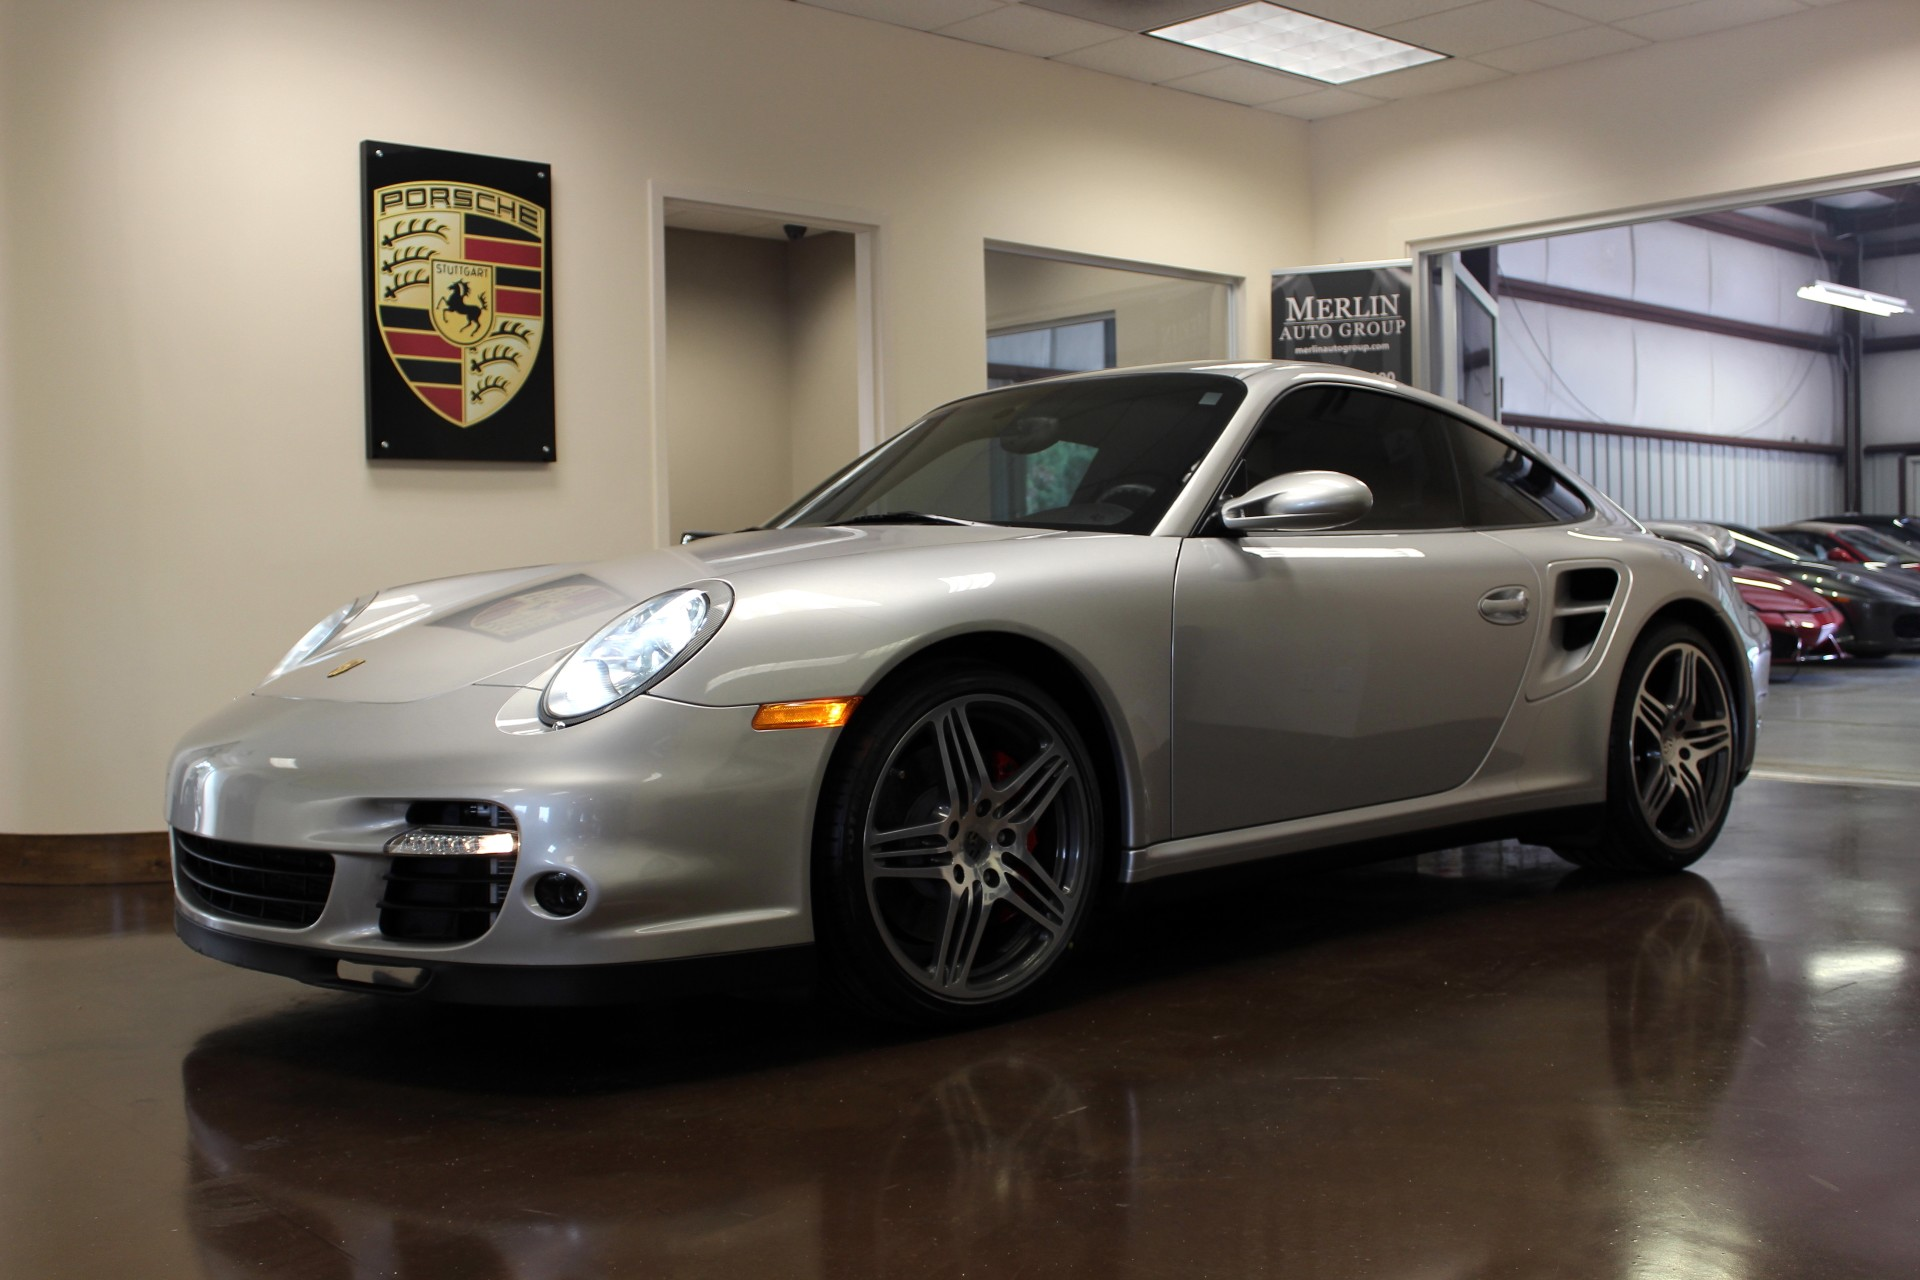 Used 2007 Porsche 911 Stock P2889 Ultra Luxury Car From